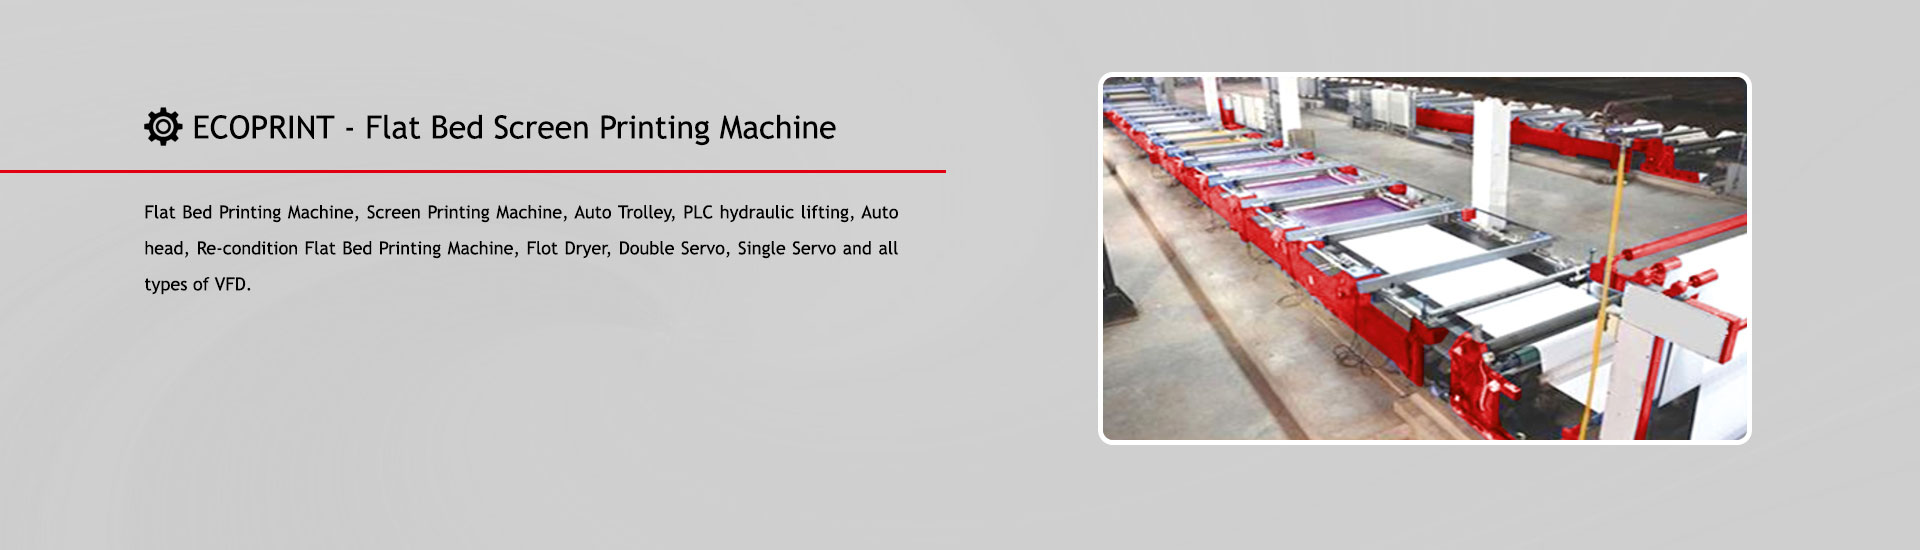 Ecoprint Flat Bed Screen Printing Machine